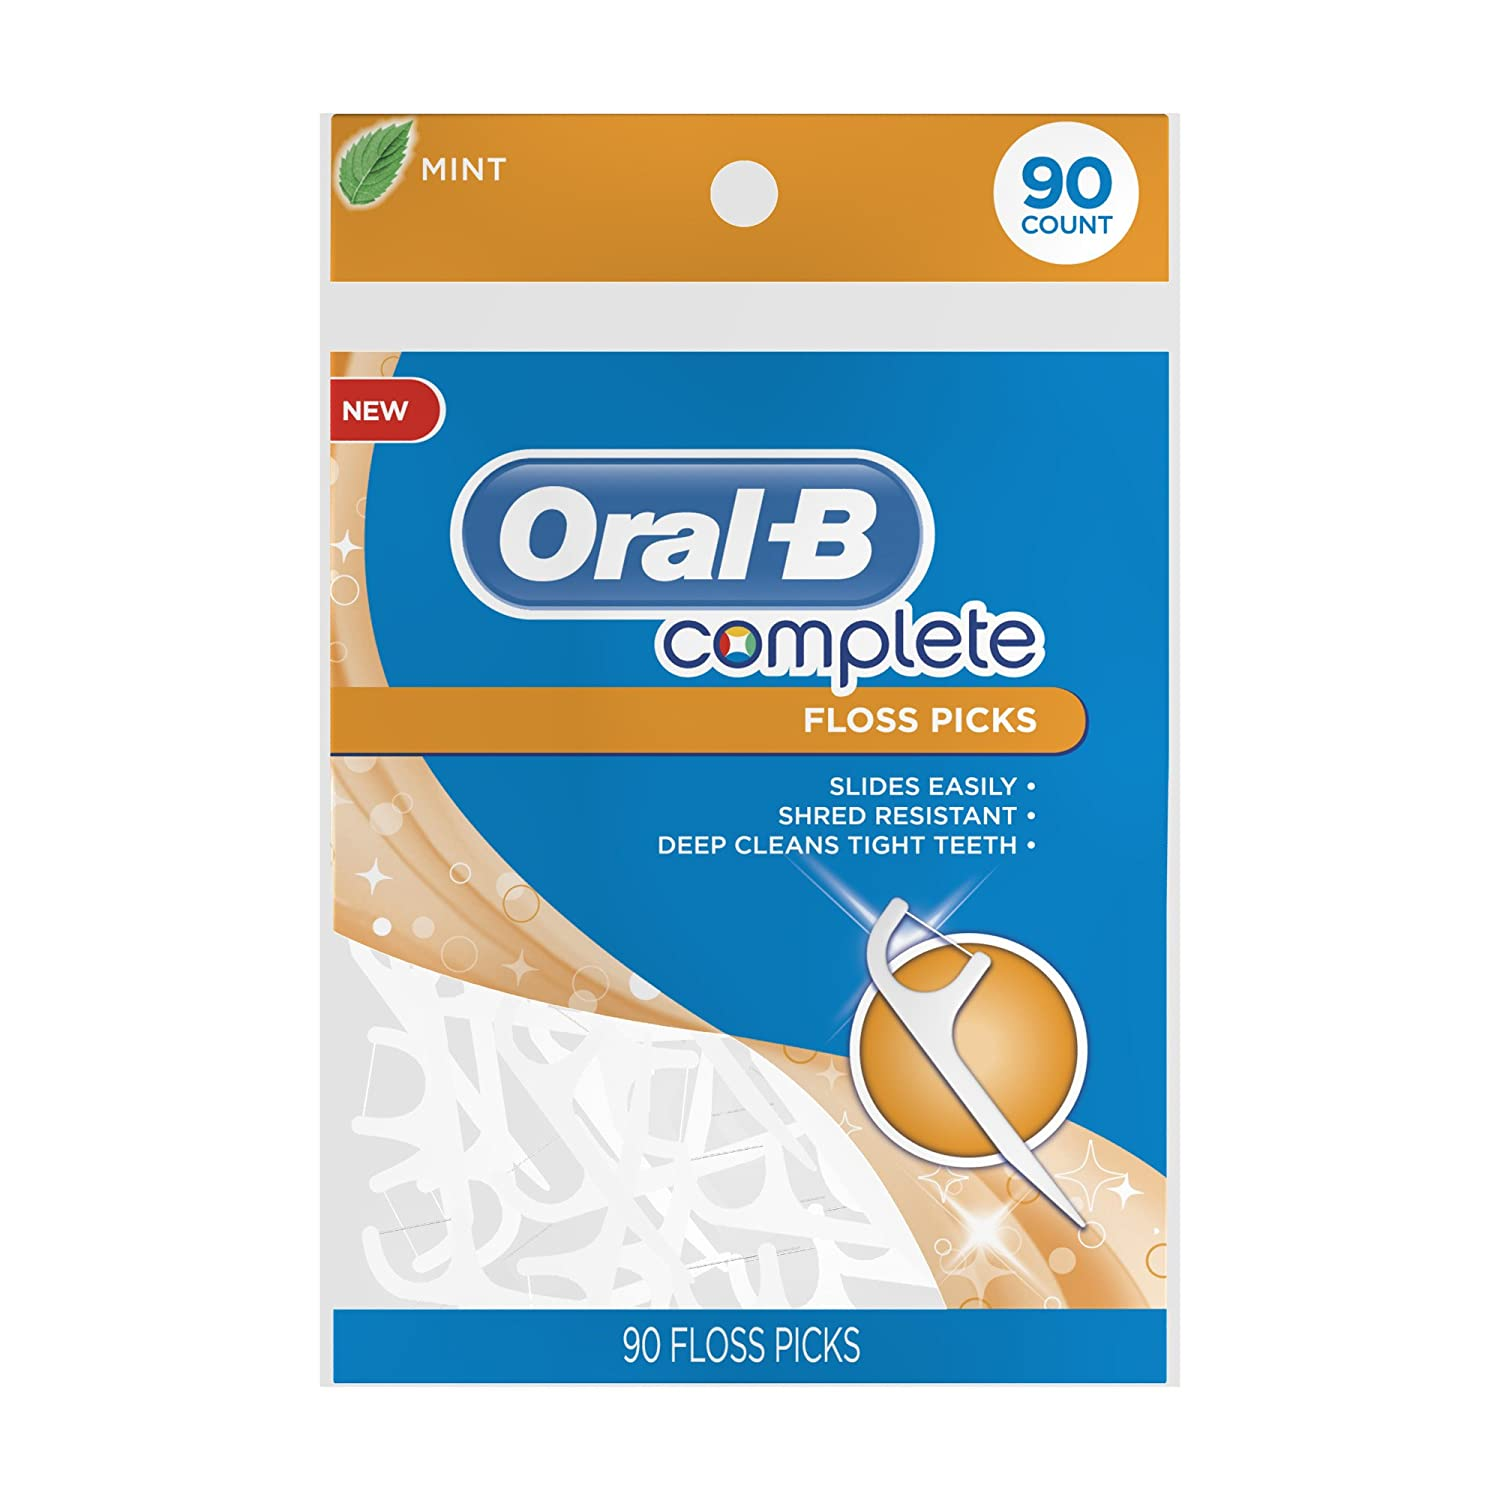 Oral-B Complete Floss Picks Mint 90 Count $1.99